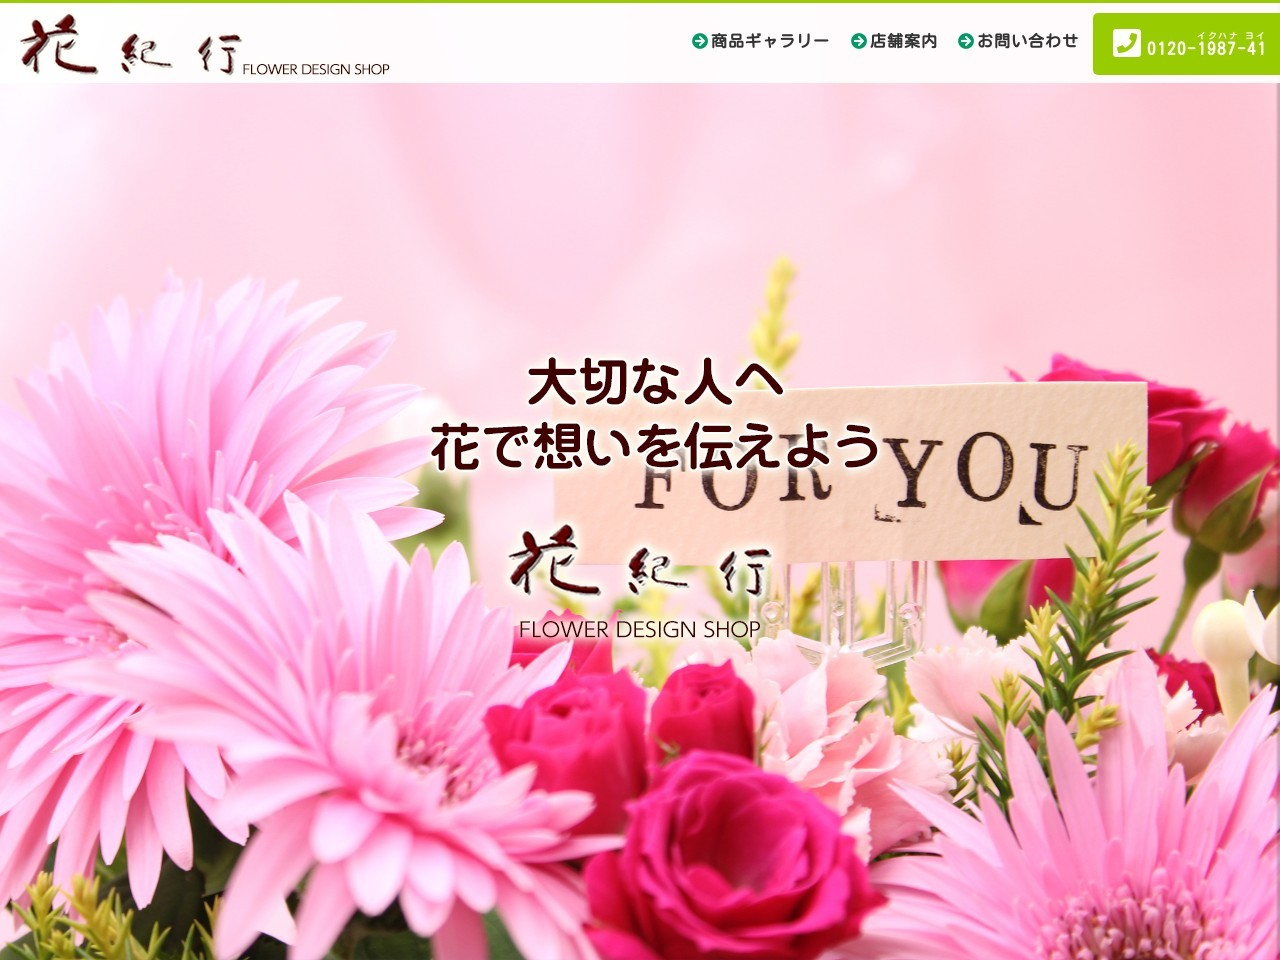 FLOWER DESIGN SHOP 花紀行